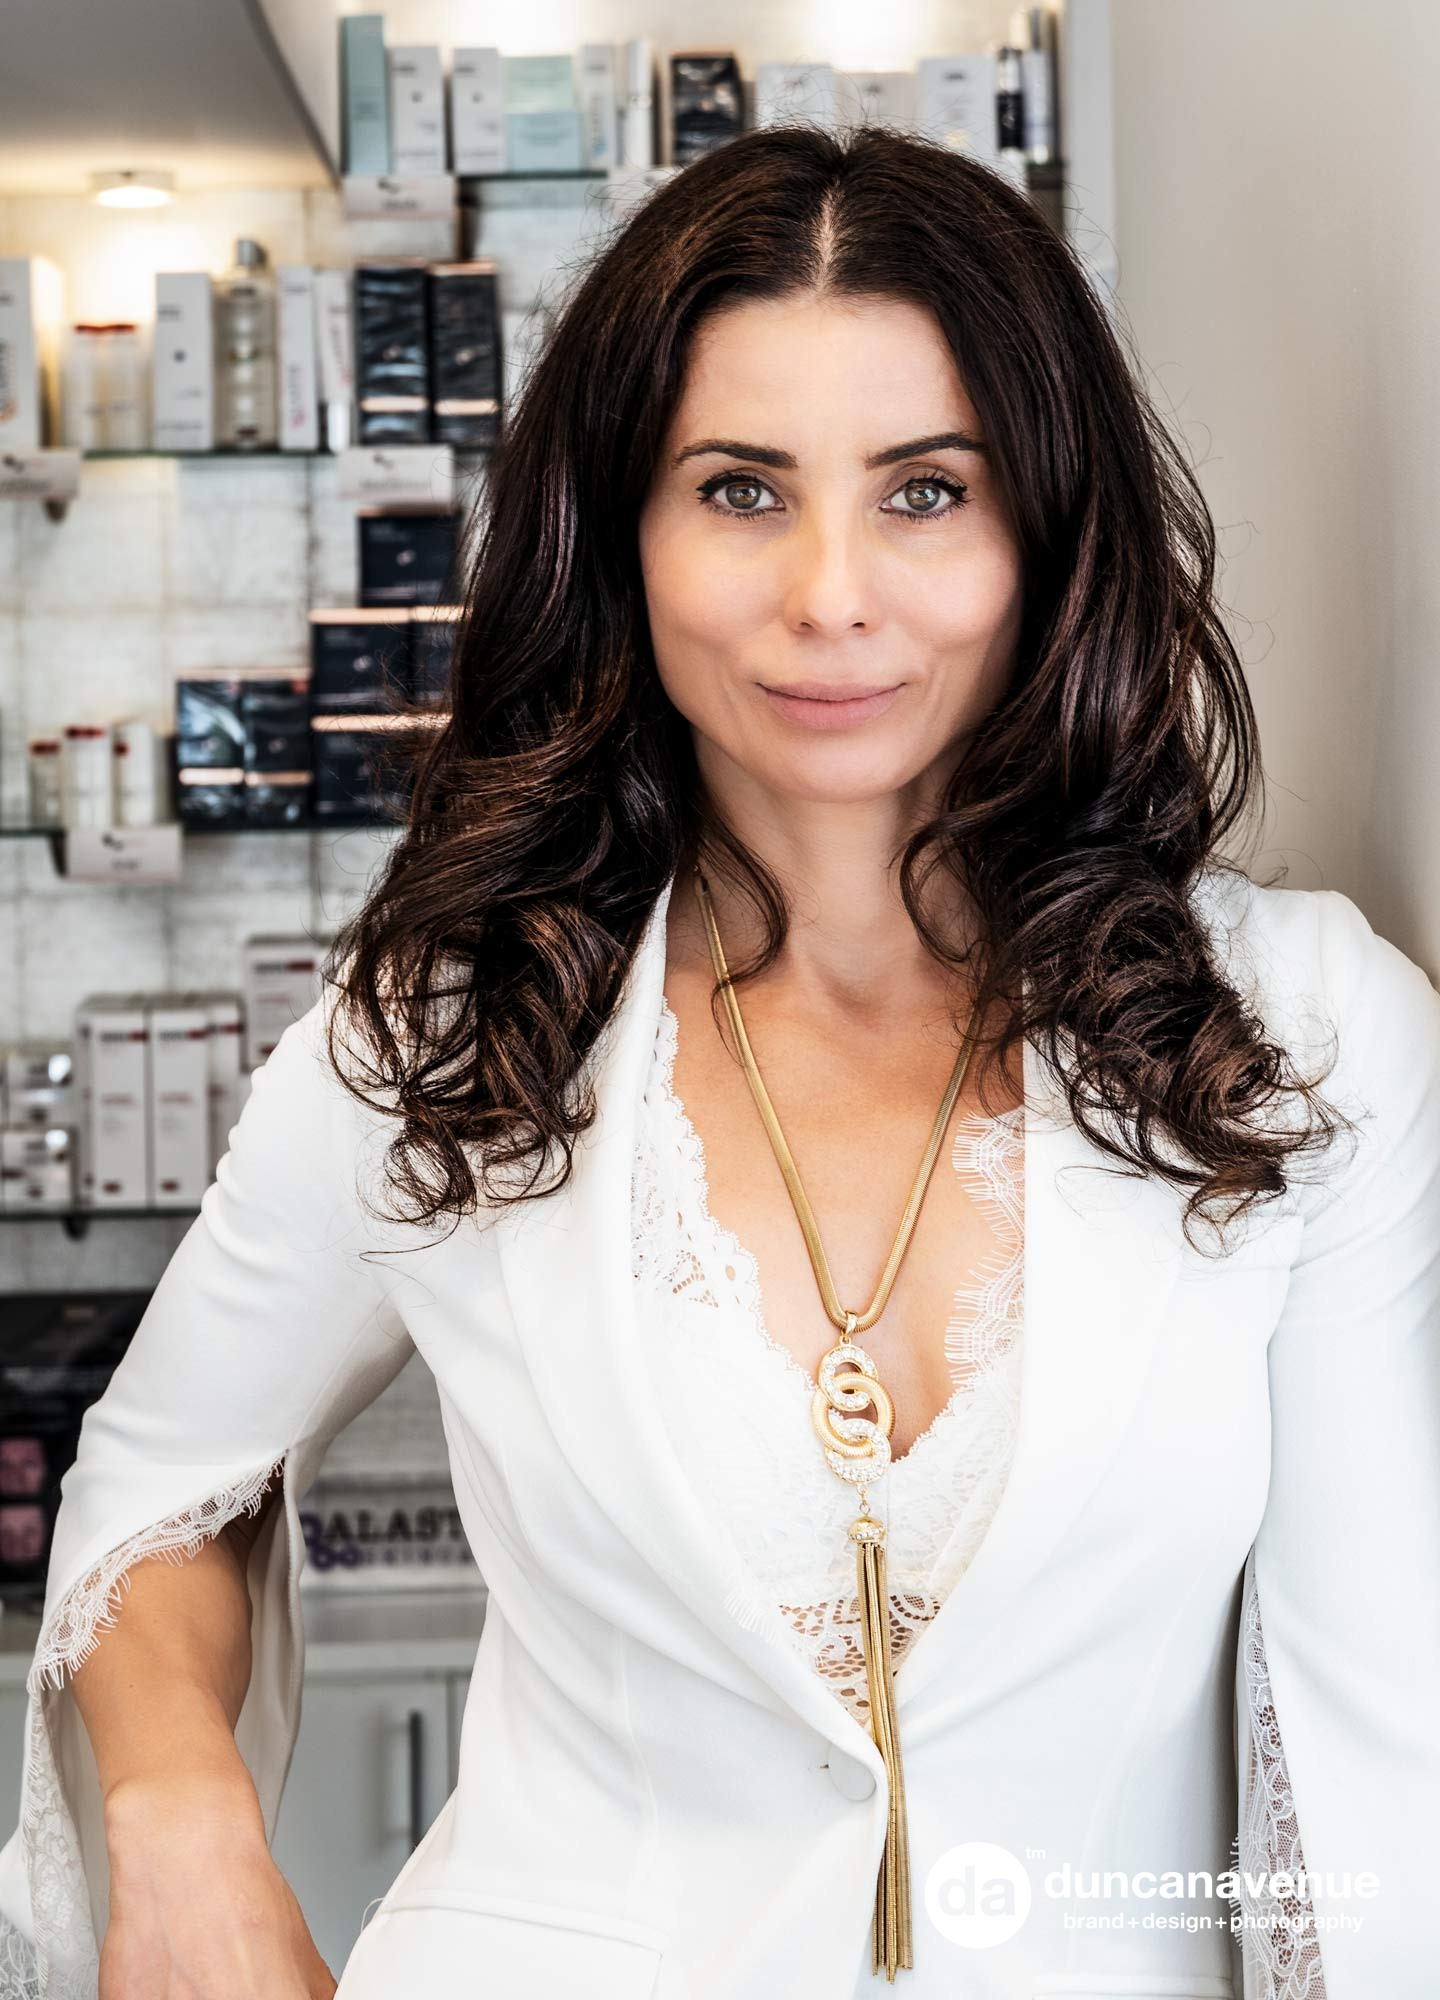 Irina Damyanidu for the Hudson Valley Style Magazine - Hebe Med Spa Brand and Portrait Photography by Maxwell Alexander / Duncan Avenue Studio